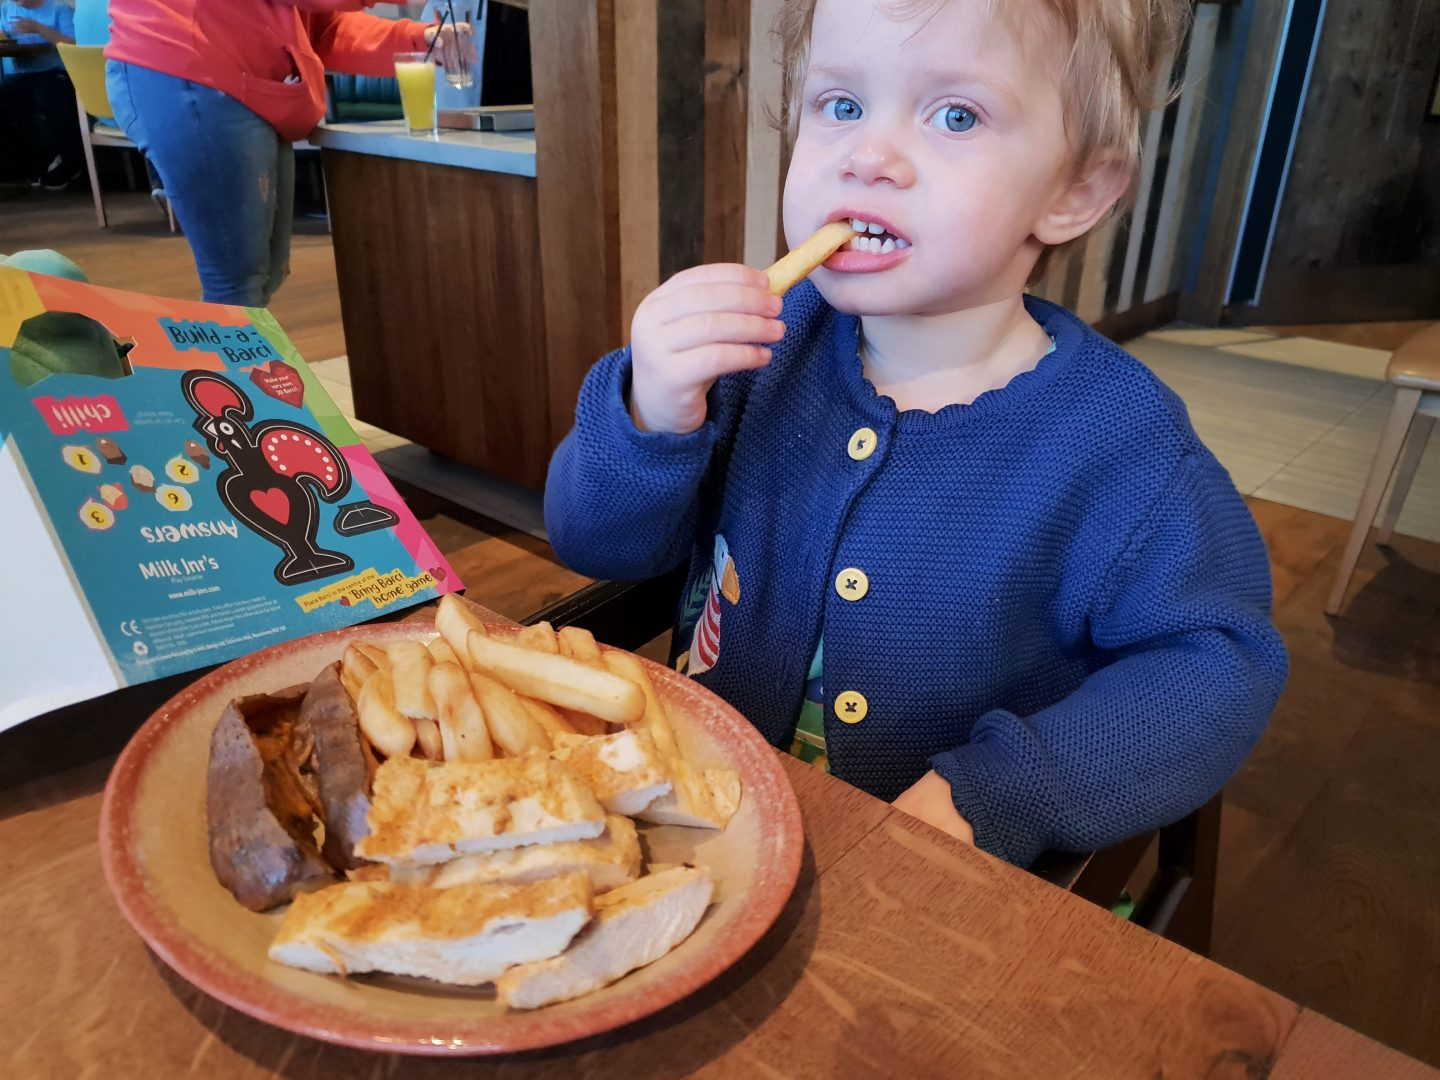 Toddler with Nandinos chicken strips, chips and sweet potato at Nando's, South Aylesford Retail Park